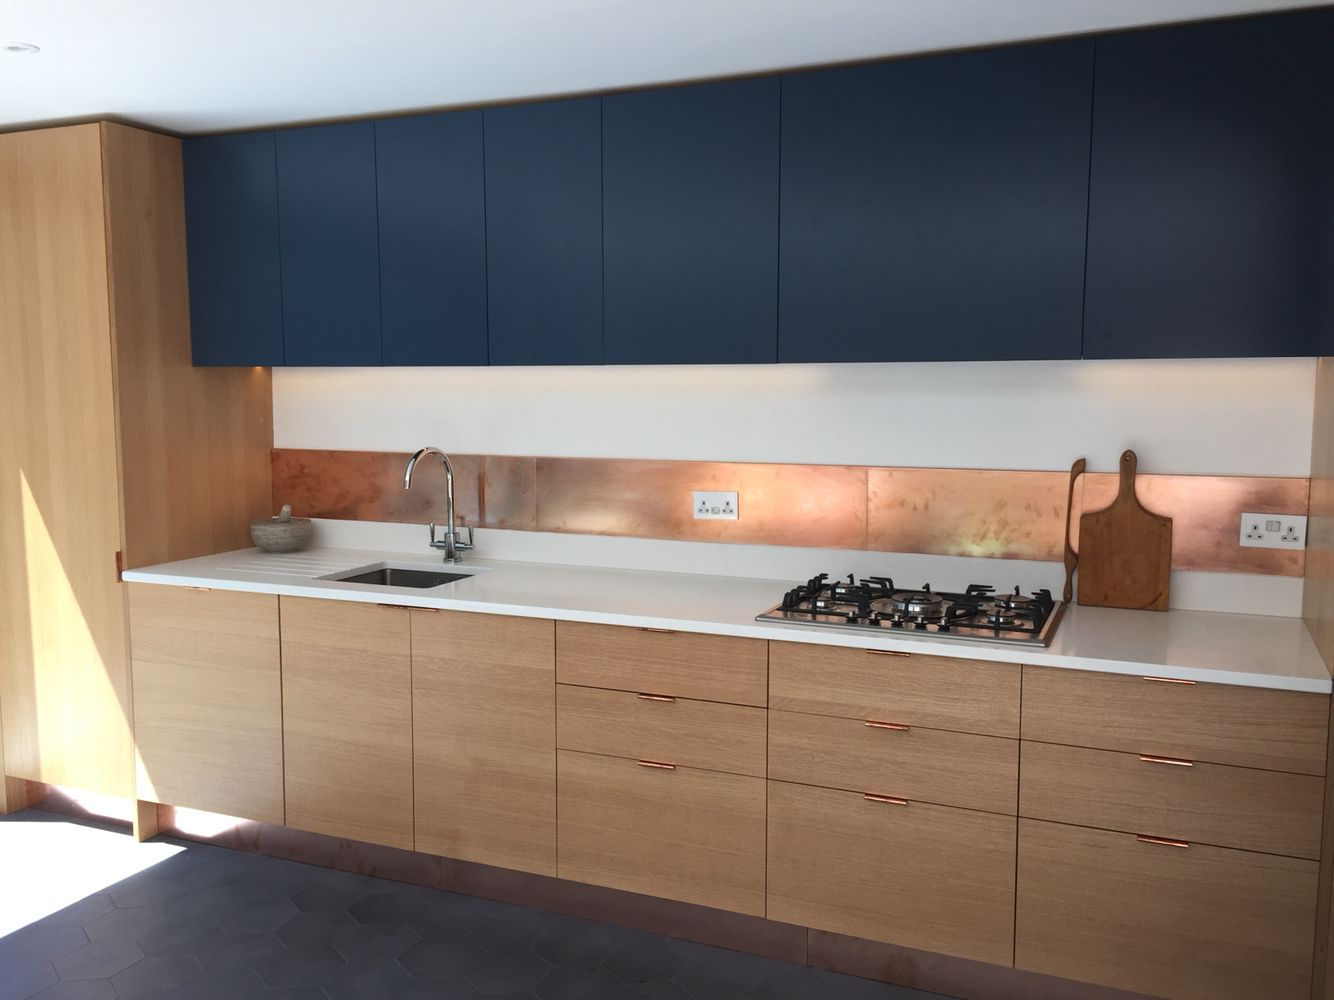 Sq1 Kitchen Medullary Ray Oak Veneer Spray Lacquered Birch Ply Cabinets Simonswerk Copper Kitchen Cabinets Decor Kitchen Renovation Kitchen Cabinet Design